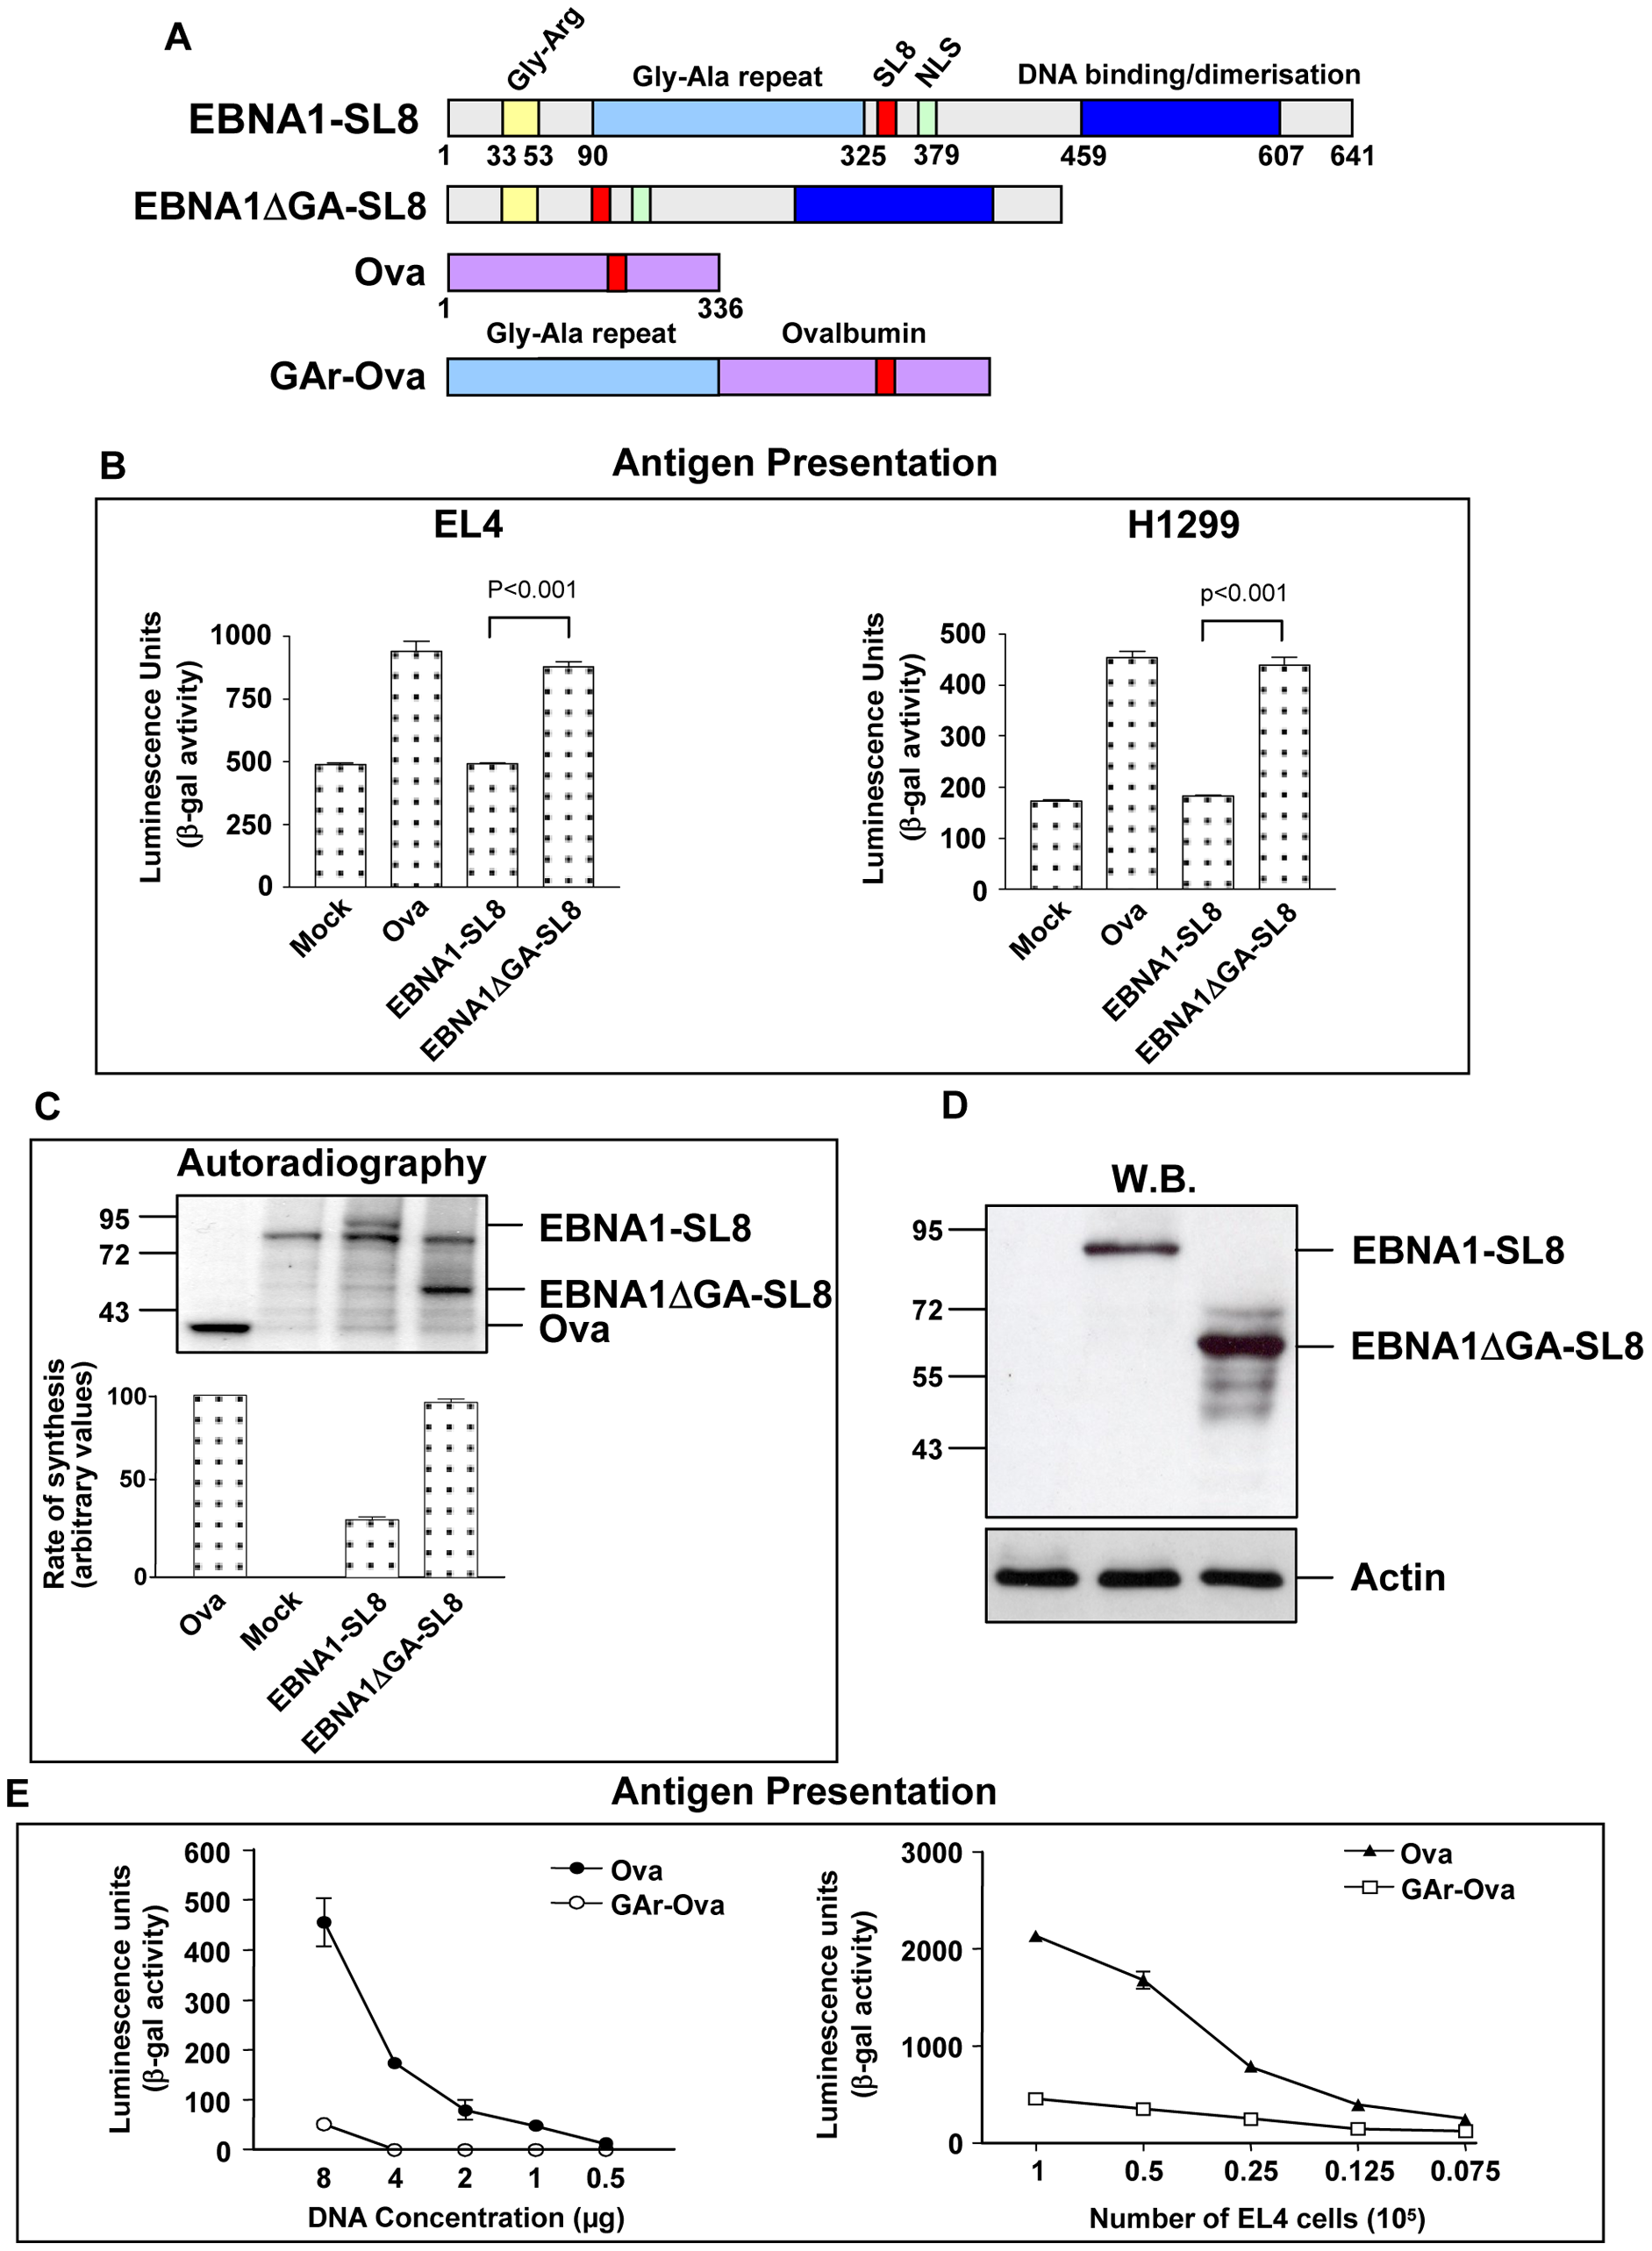 Inhibition of EBNA1 synthesis prevents presentation of peptides derived from the EBNA1 mRNA.